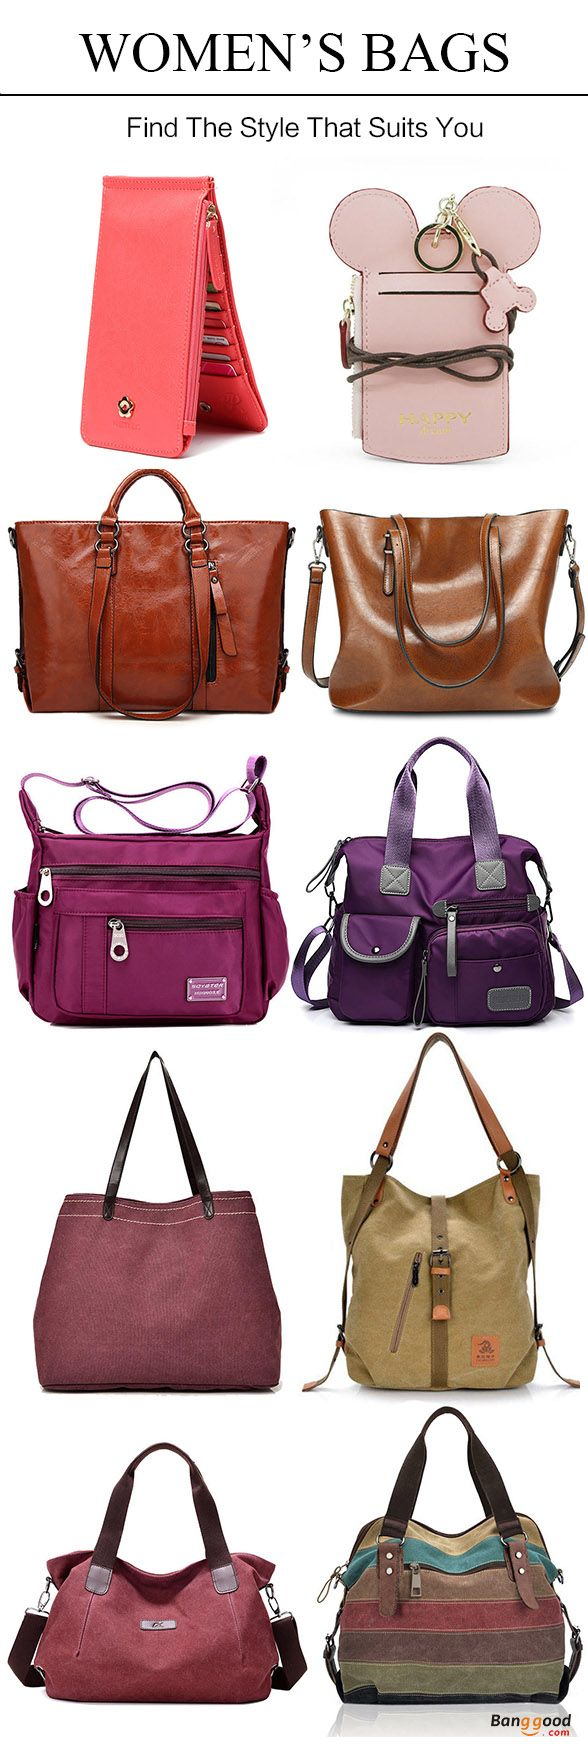 Women's bags, handbags, crossbody bags, wallets, purses, clutch bags, backpacks, and so on. Choose from a variety of styles, Get the look!